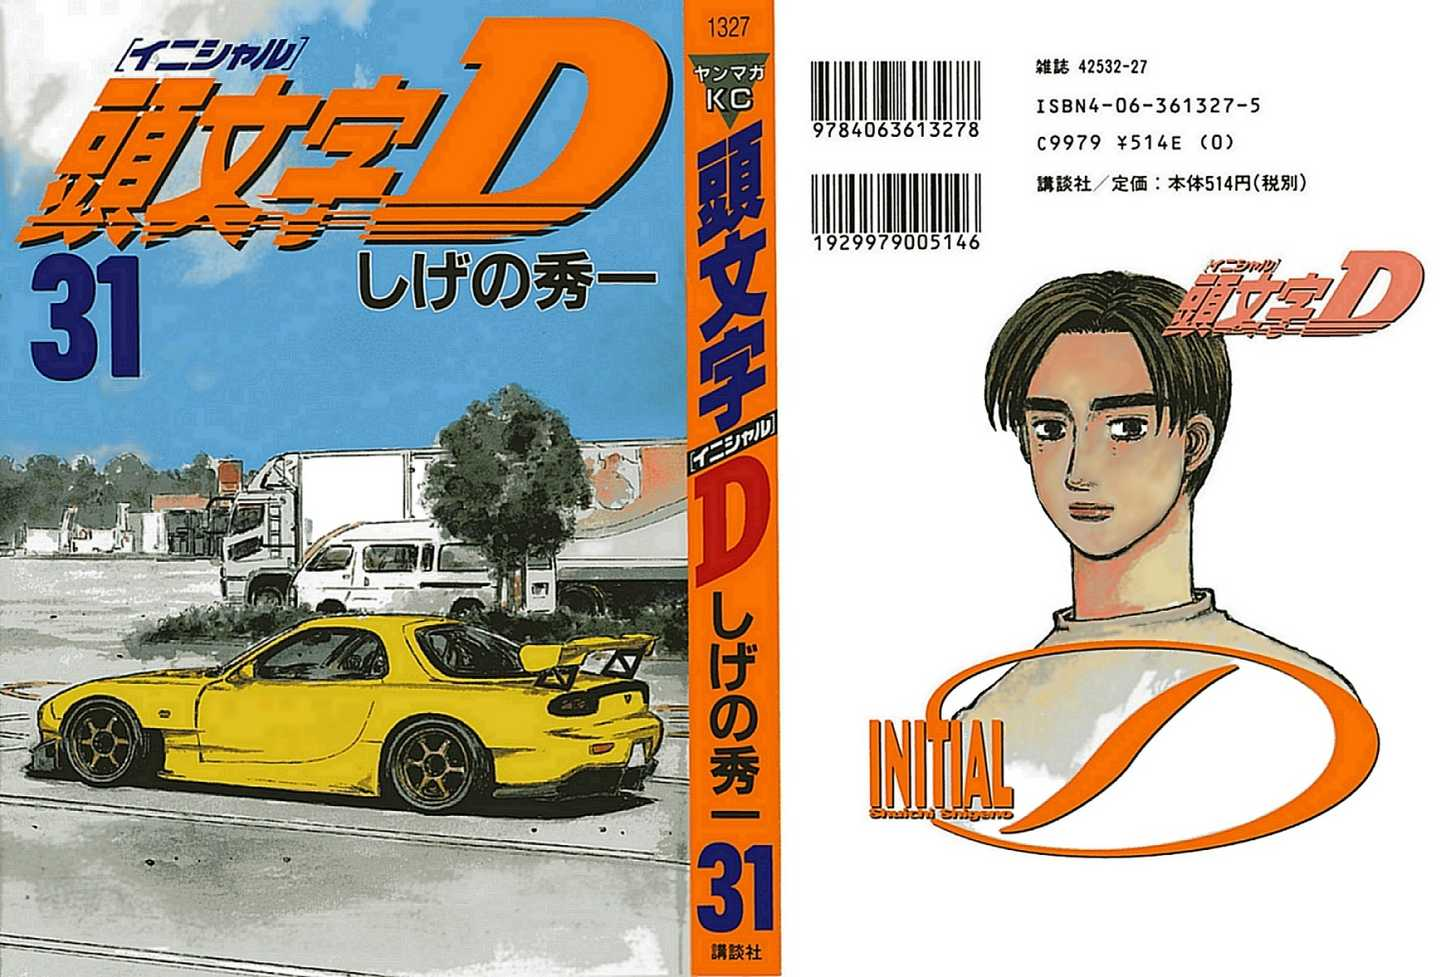 http://im.nineanime.com/comics/pic9/61/2493/61081/InitialD4050614.jpg Page 1